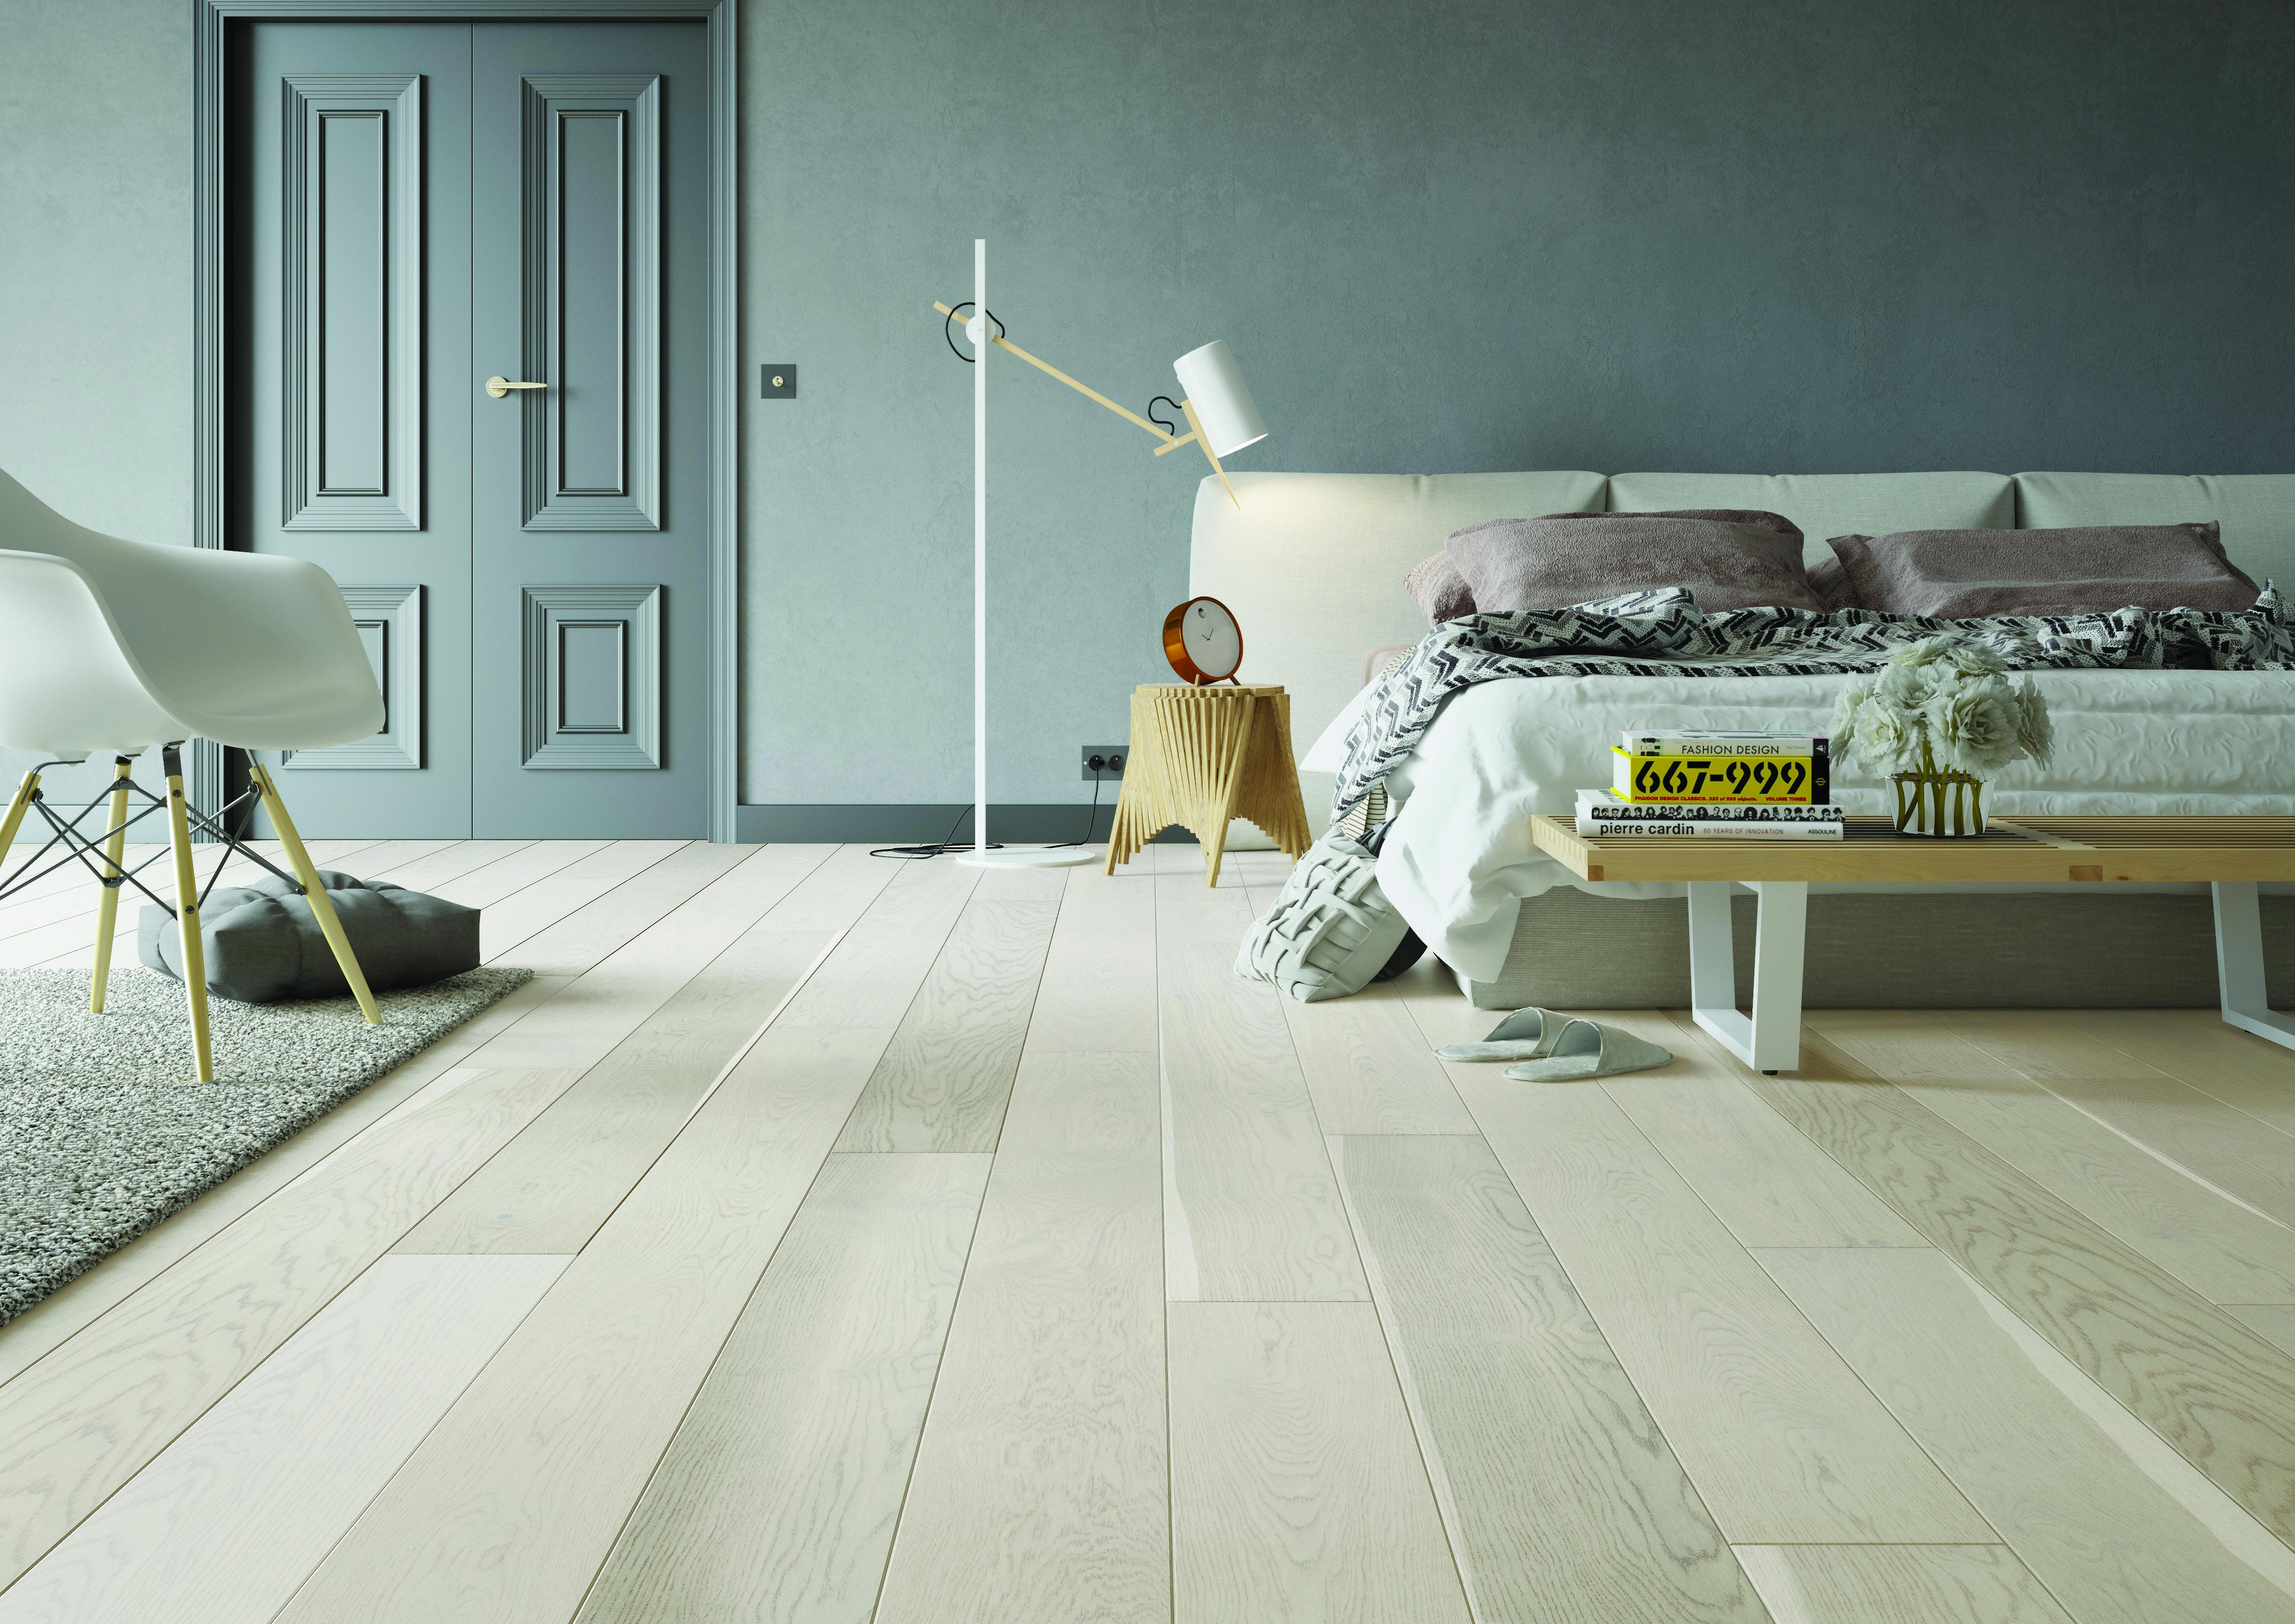 Tuscan Country Bleached Oak Brushed & Matt Lacquered TF109 Engineered Wood Flooring